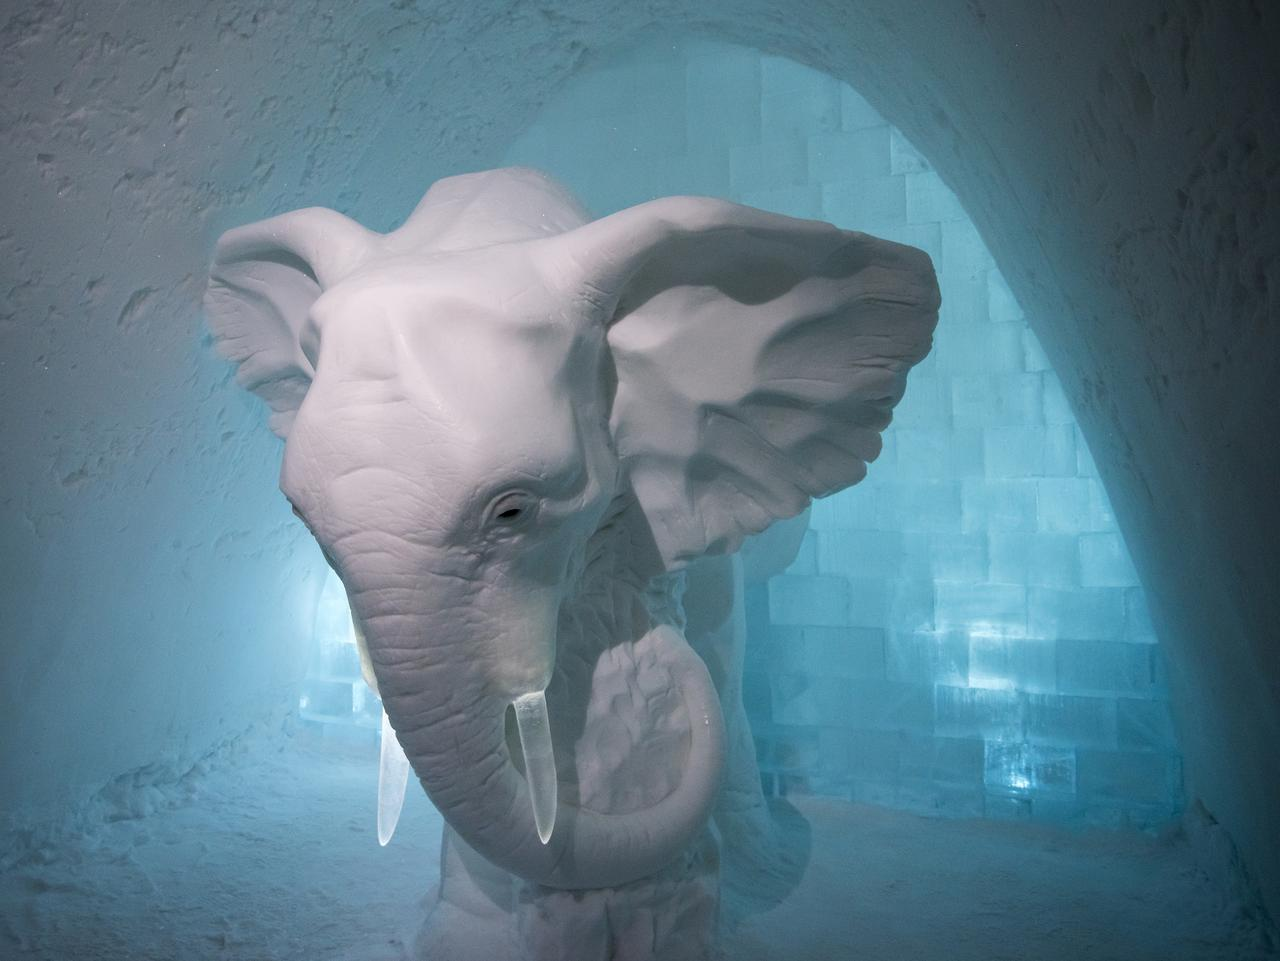 ESCAPE: ICE HOTEL, SWEDEN .. David Evans story .. elephant decoration inside the hotel. Picture: David Evans